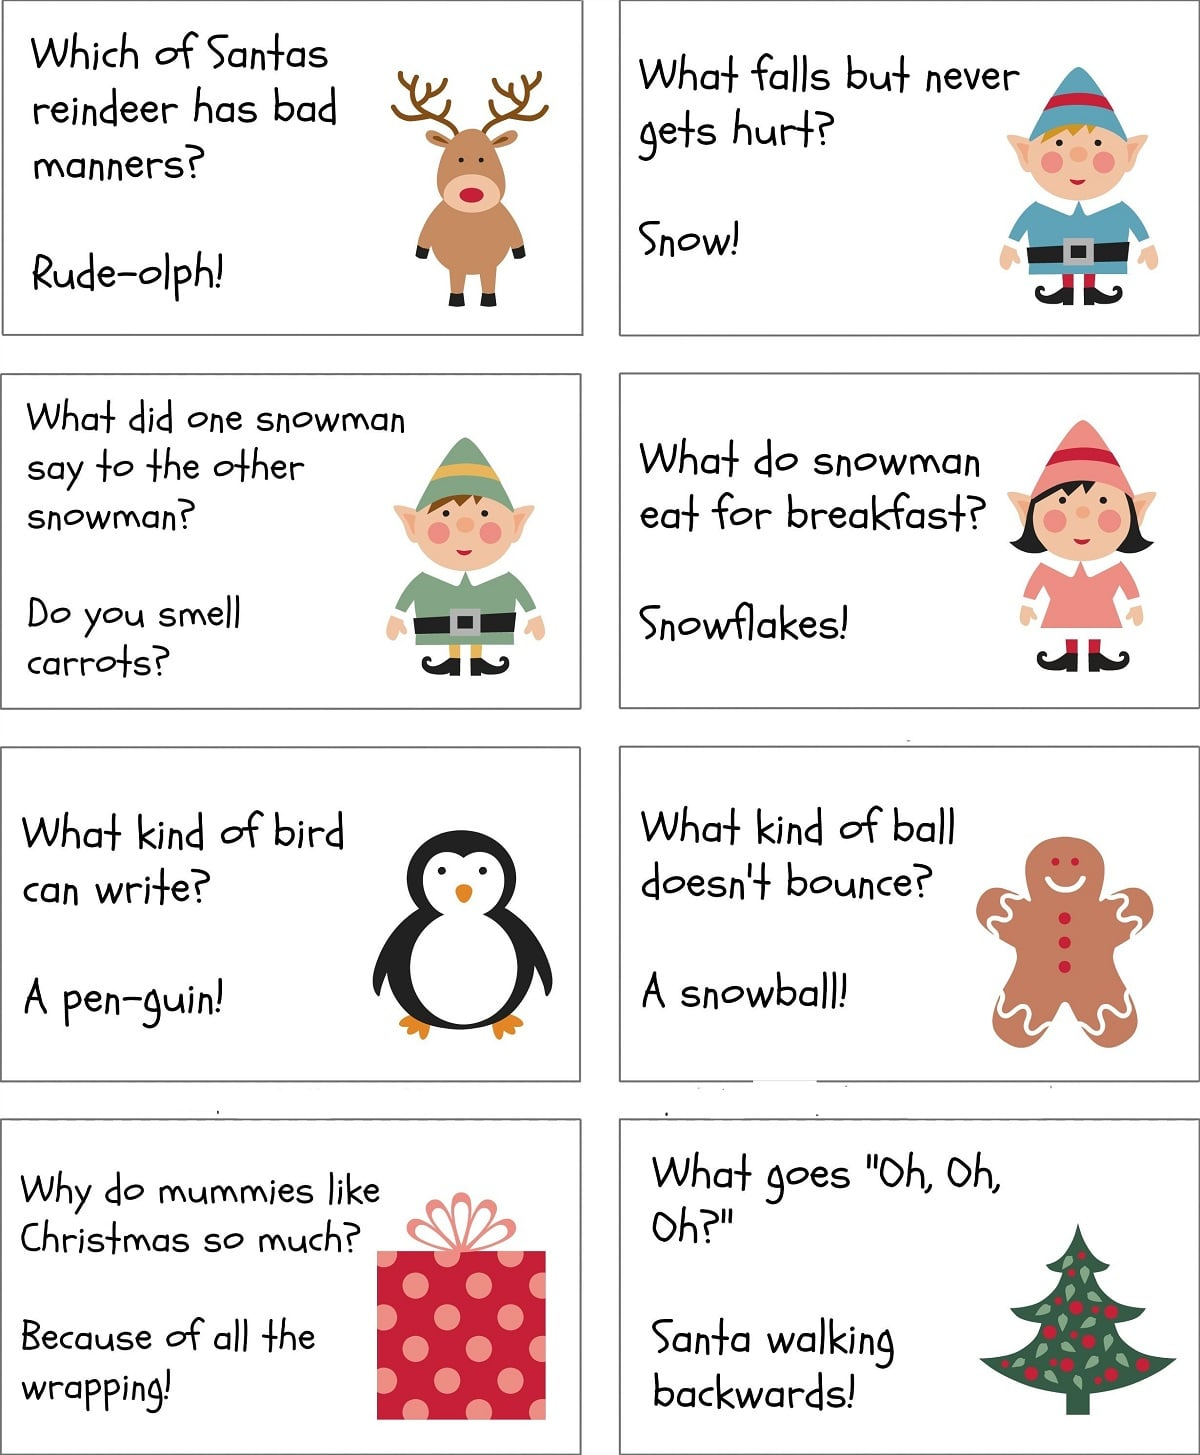 Christmas Riddles For Scavenger Hunt Kids Adults With Answer Merry Christmas Memes 2020